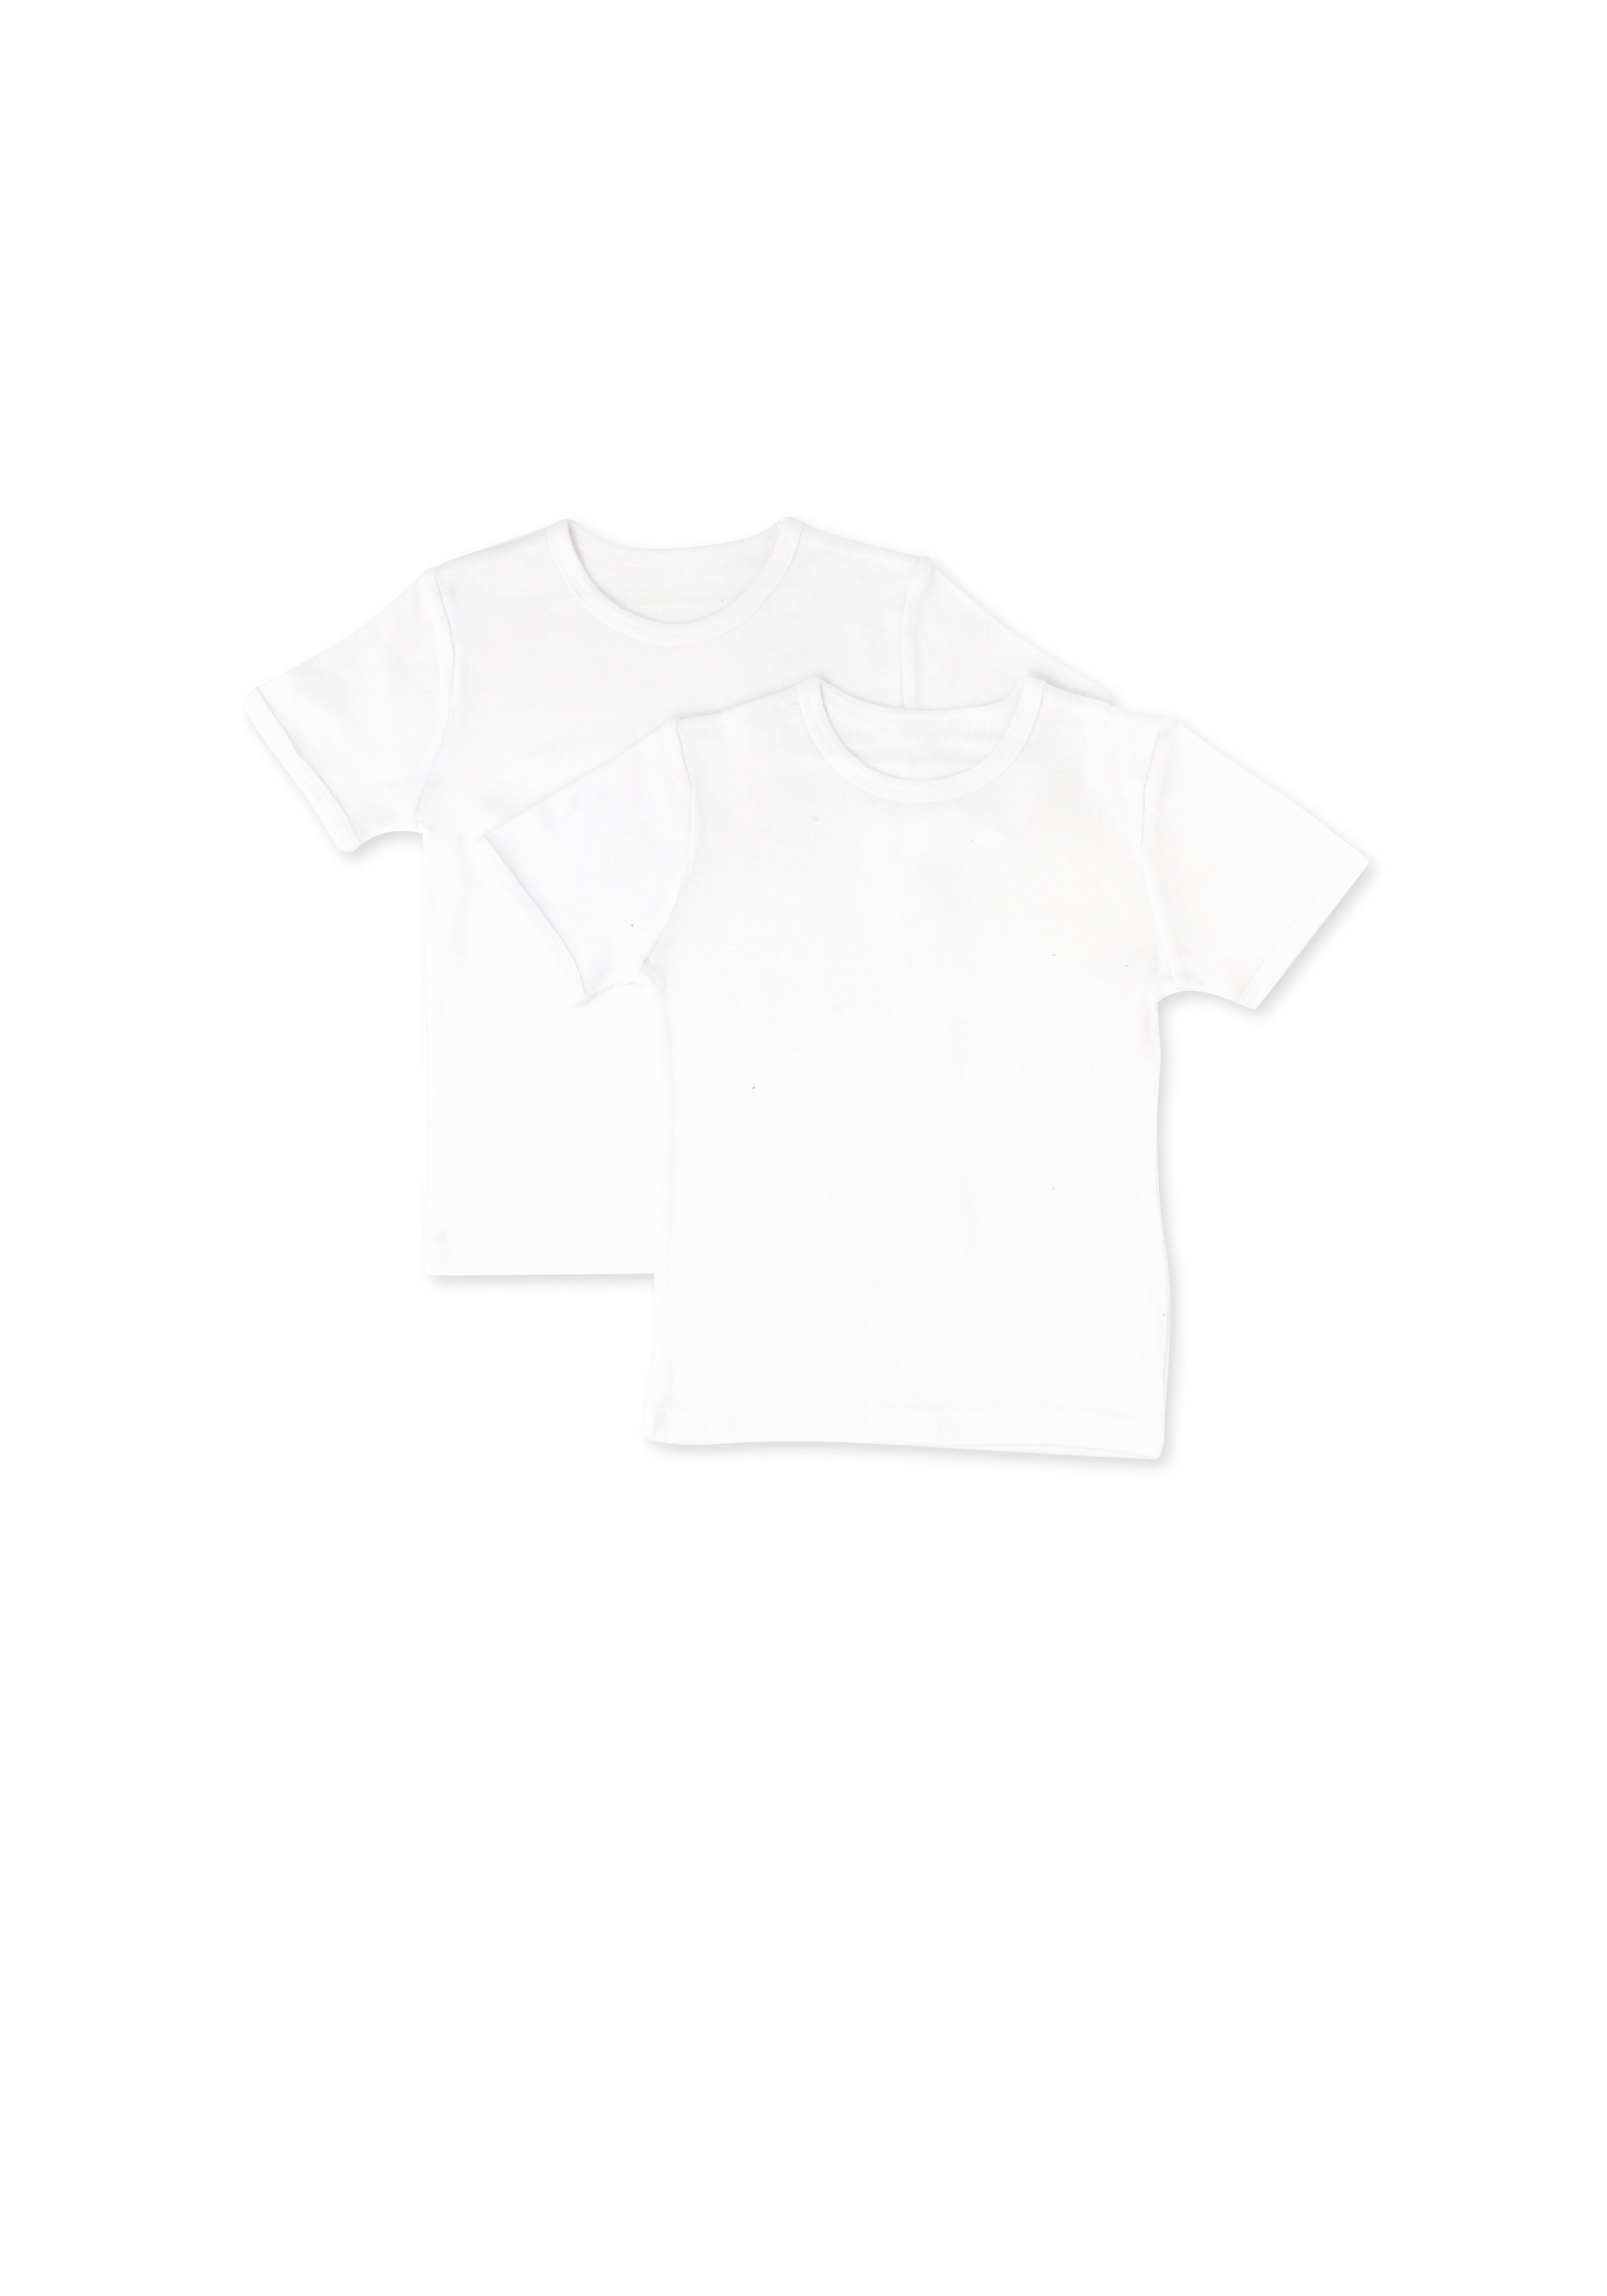 Mothercare   Boys Half Sleeves Thermal T-Shirts - Pack Of 2 - White